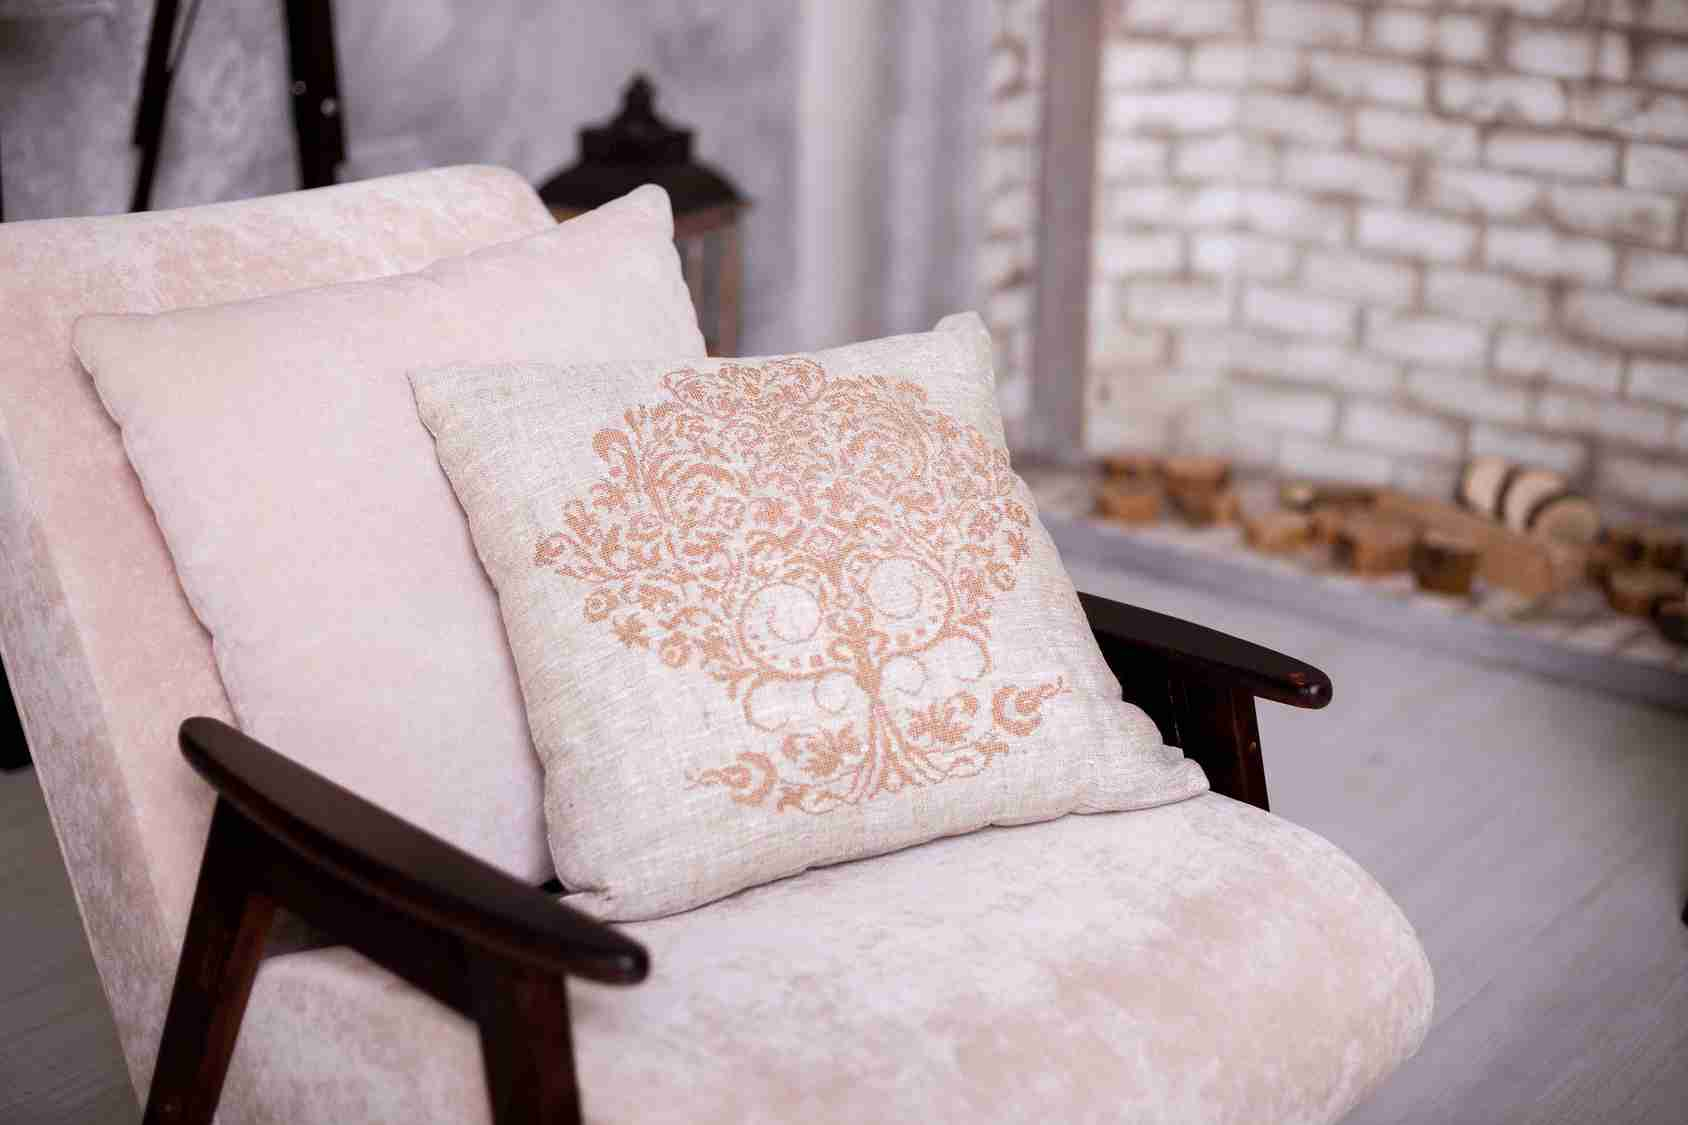 linen pillow with embroidery